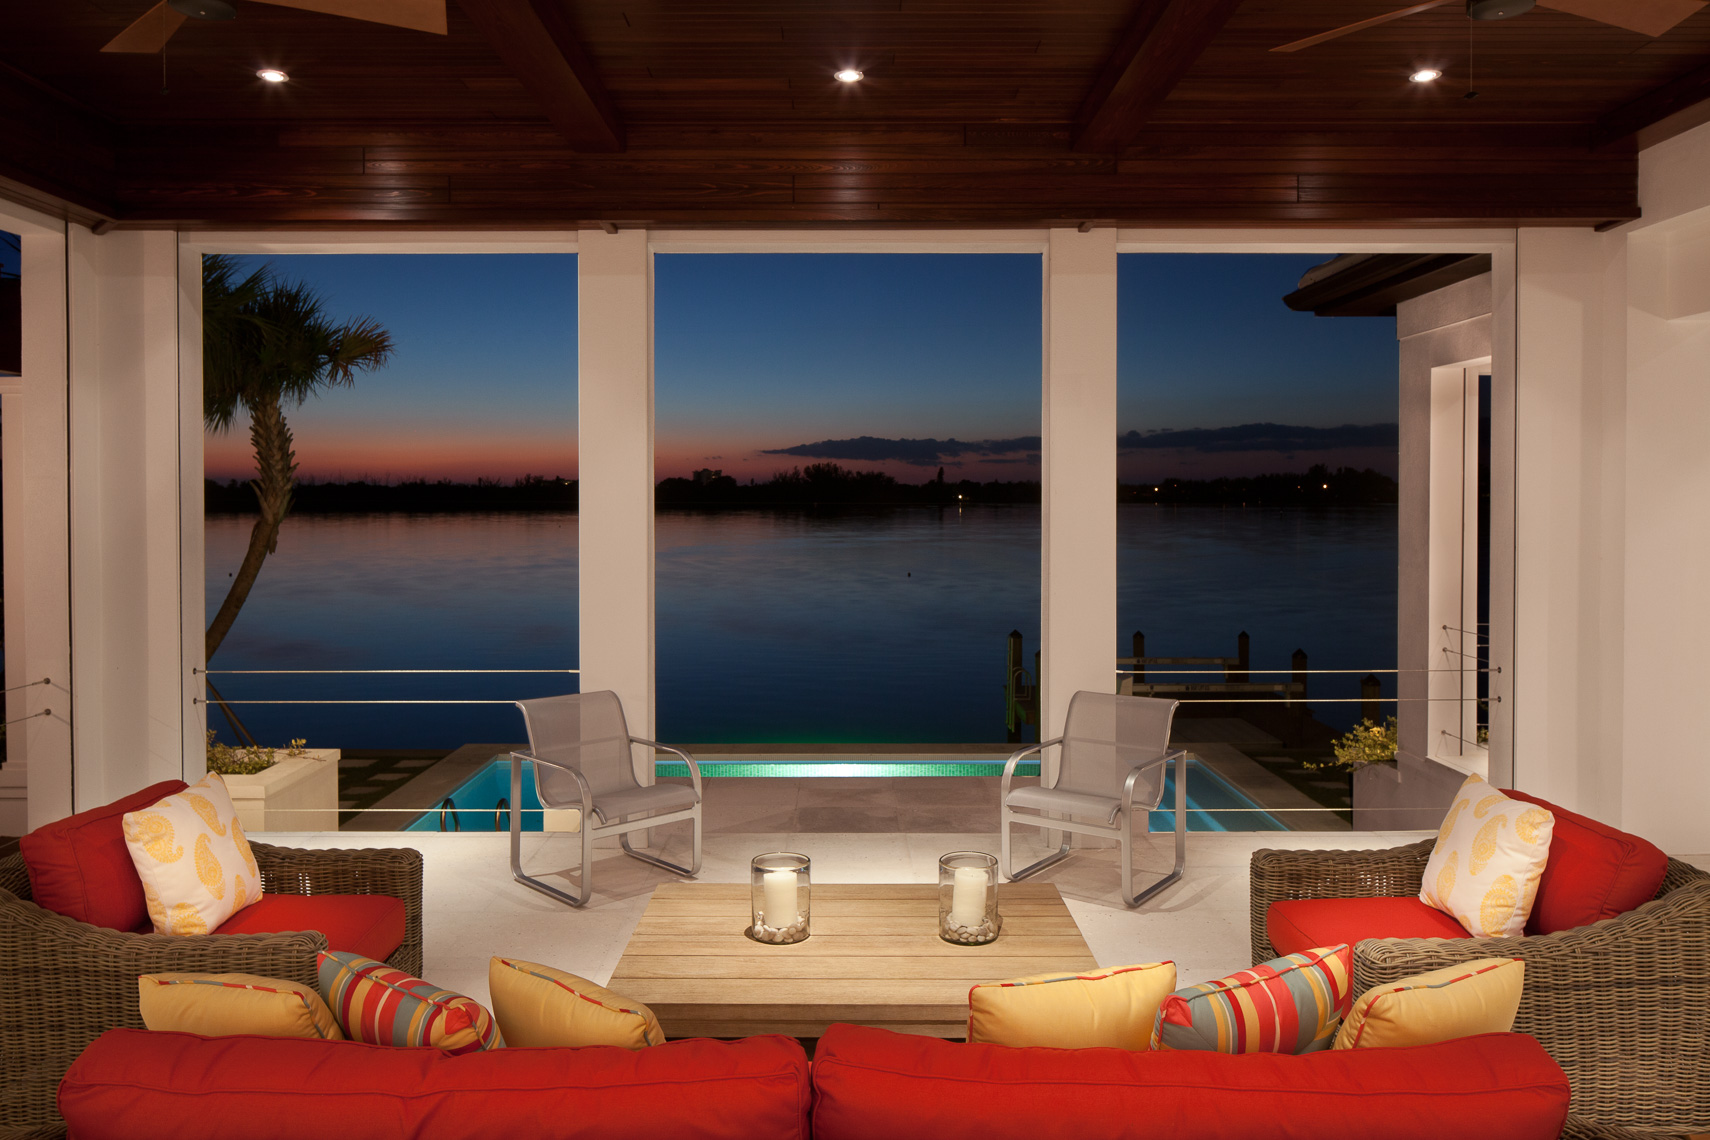 Modern Outdoor Living - Mark Borosch Photography - Bird Key, FL